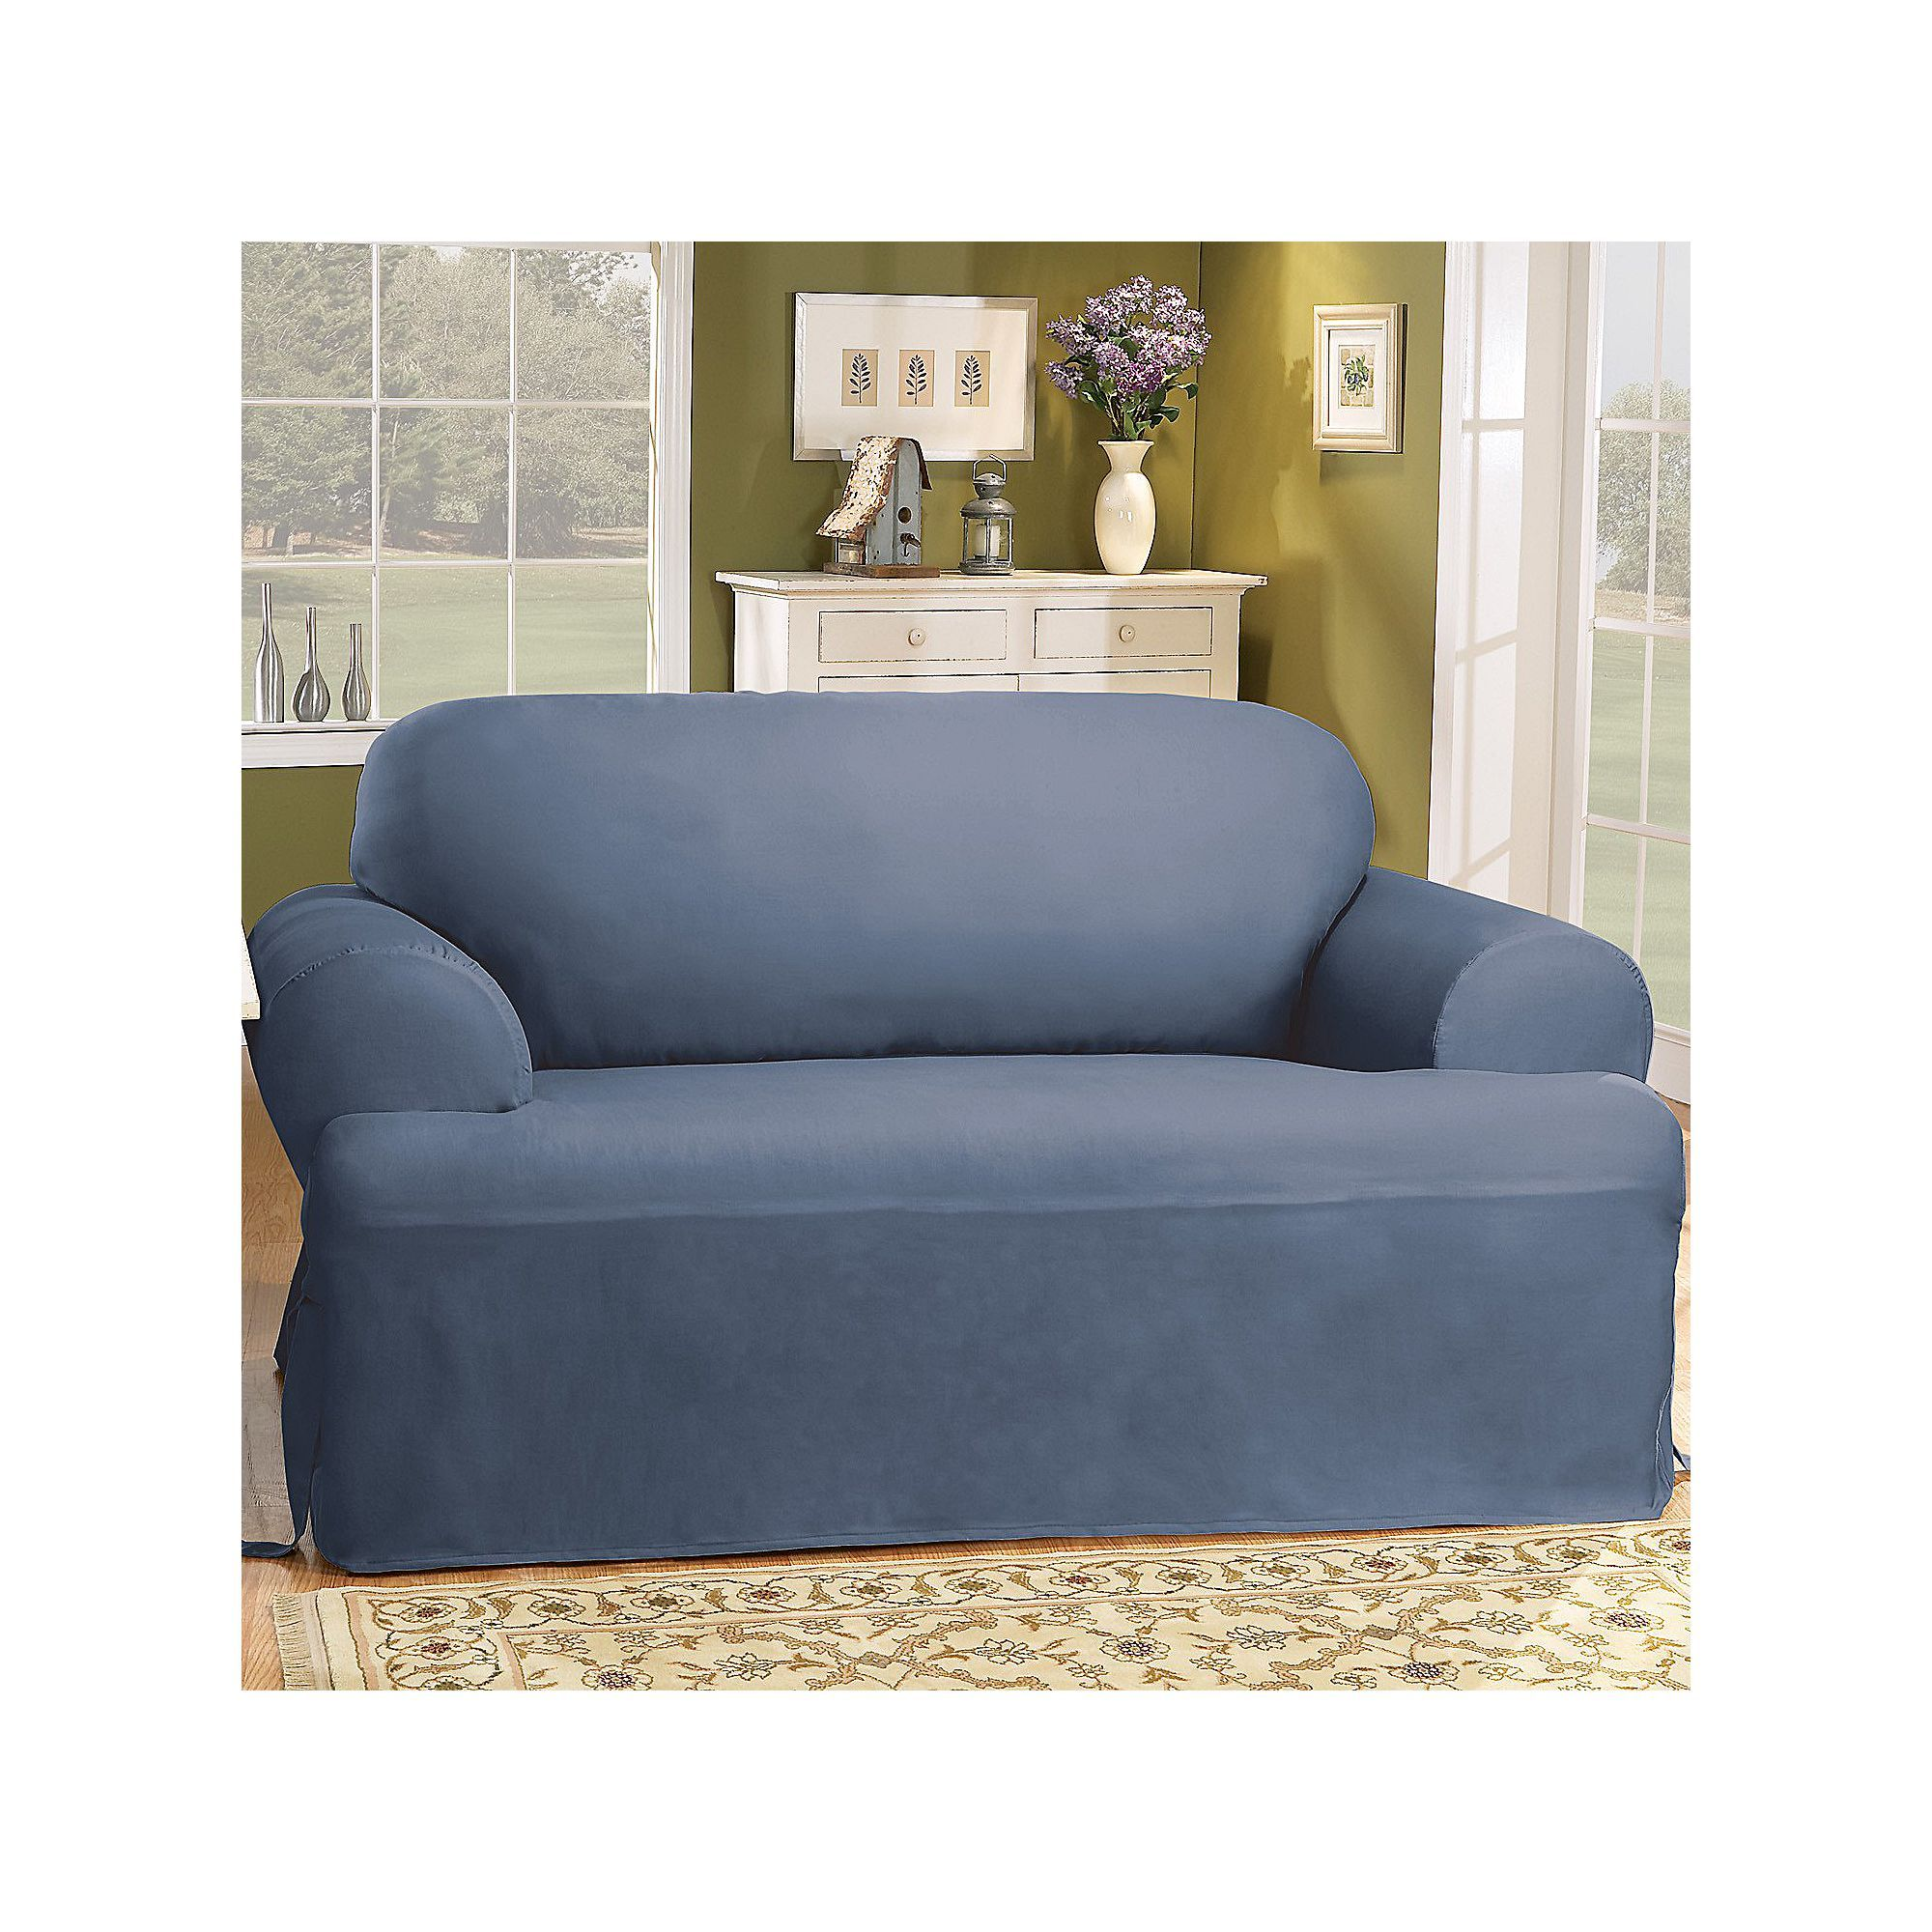 Sure Fit Solid Duck Clotht Cushion Sofa Slipcover Pinterest